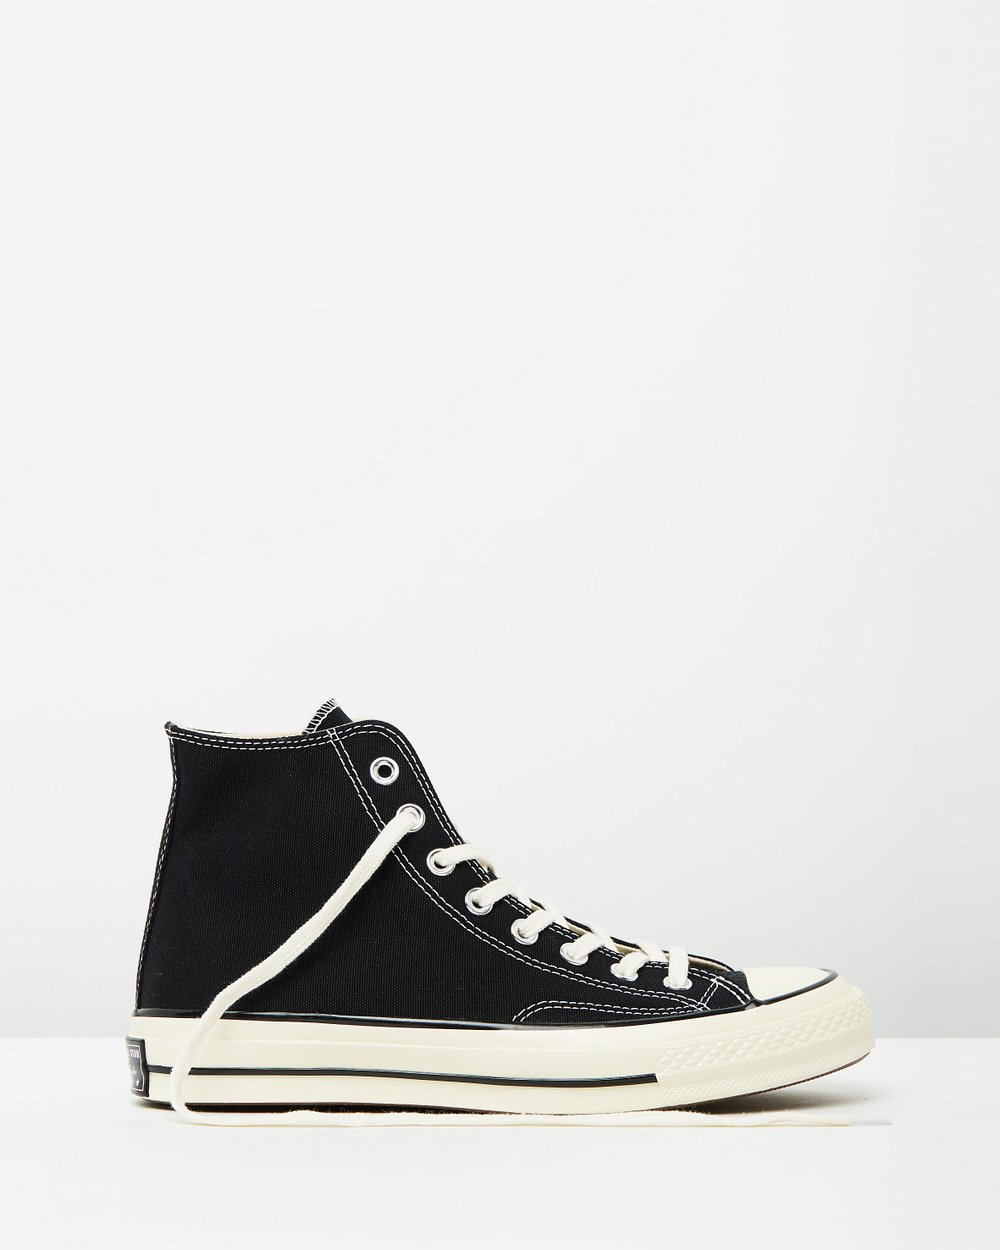 602e9b8f6d79 Chuck Taylor All Star 70 Hi Top - Unisex by Converse Online